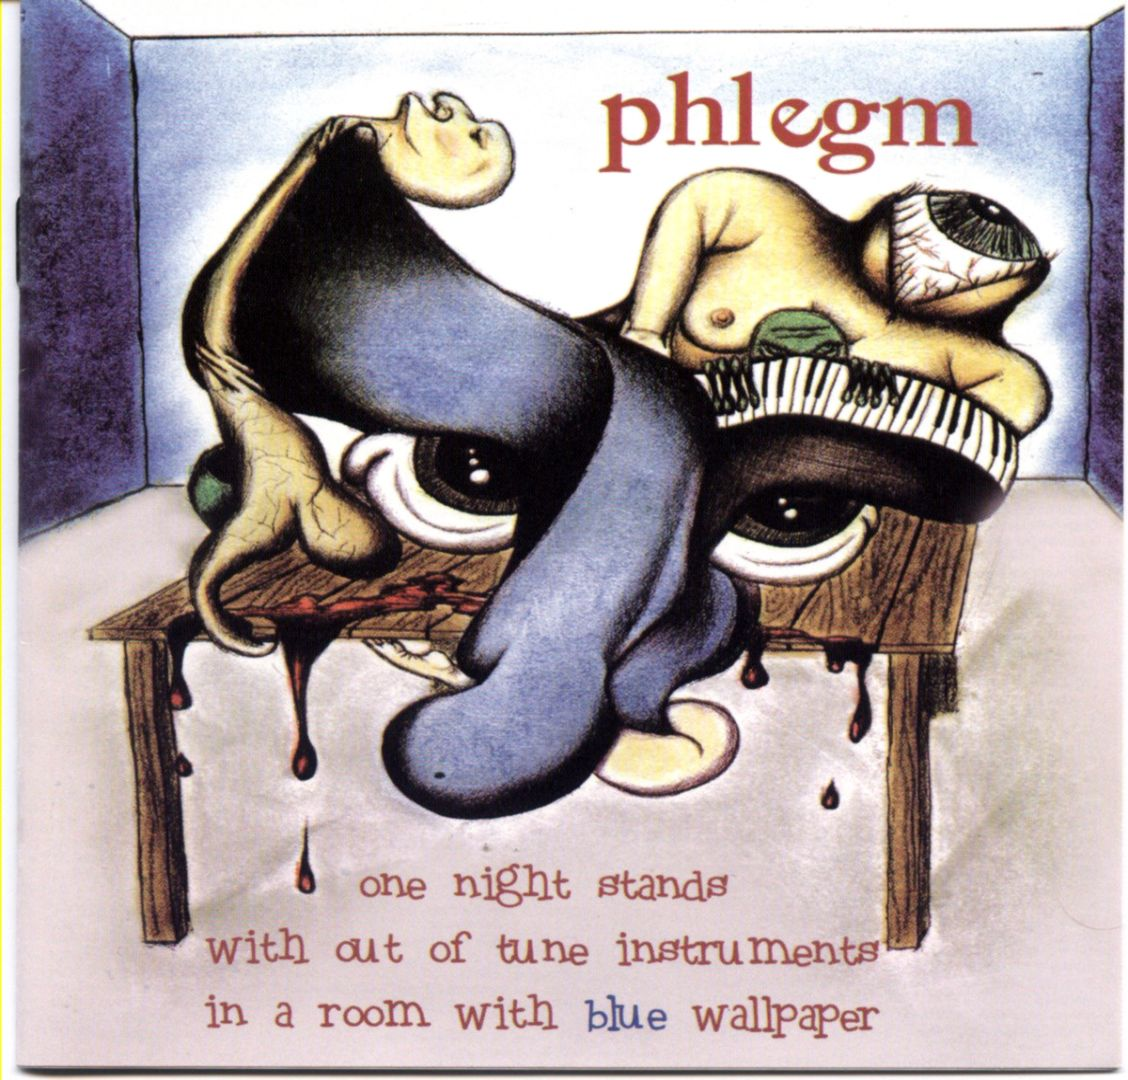 phlegm one night stands with out of tune instruments in a room